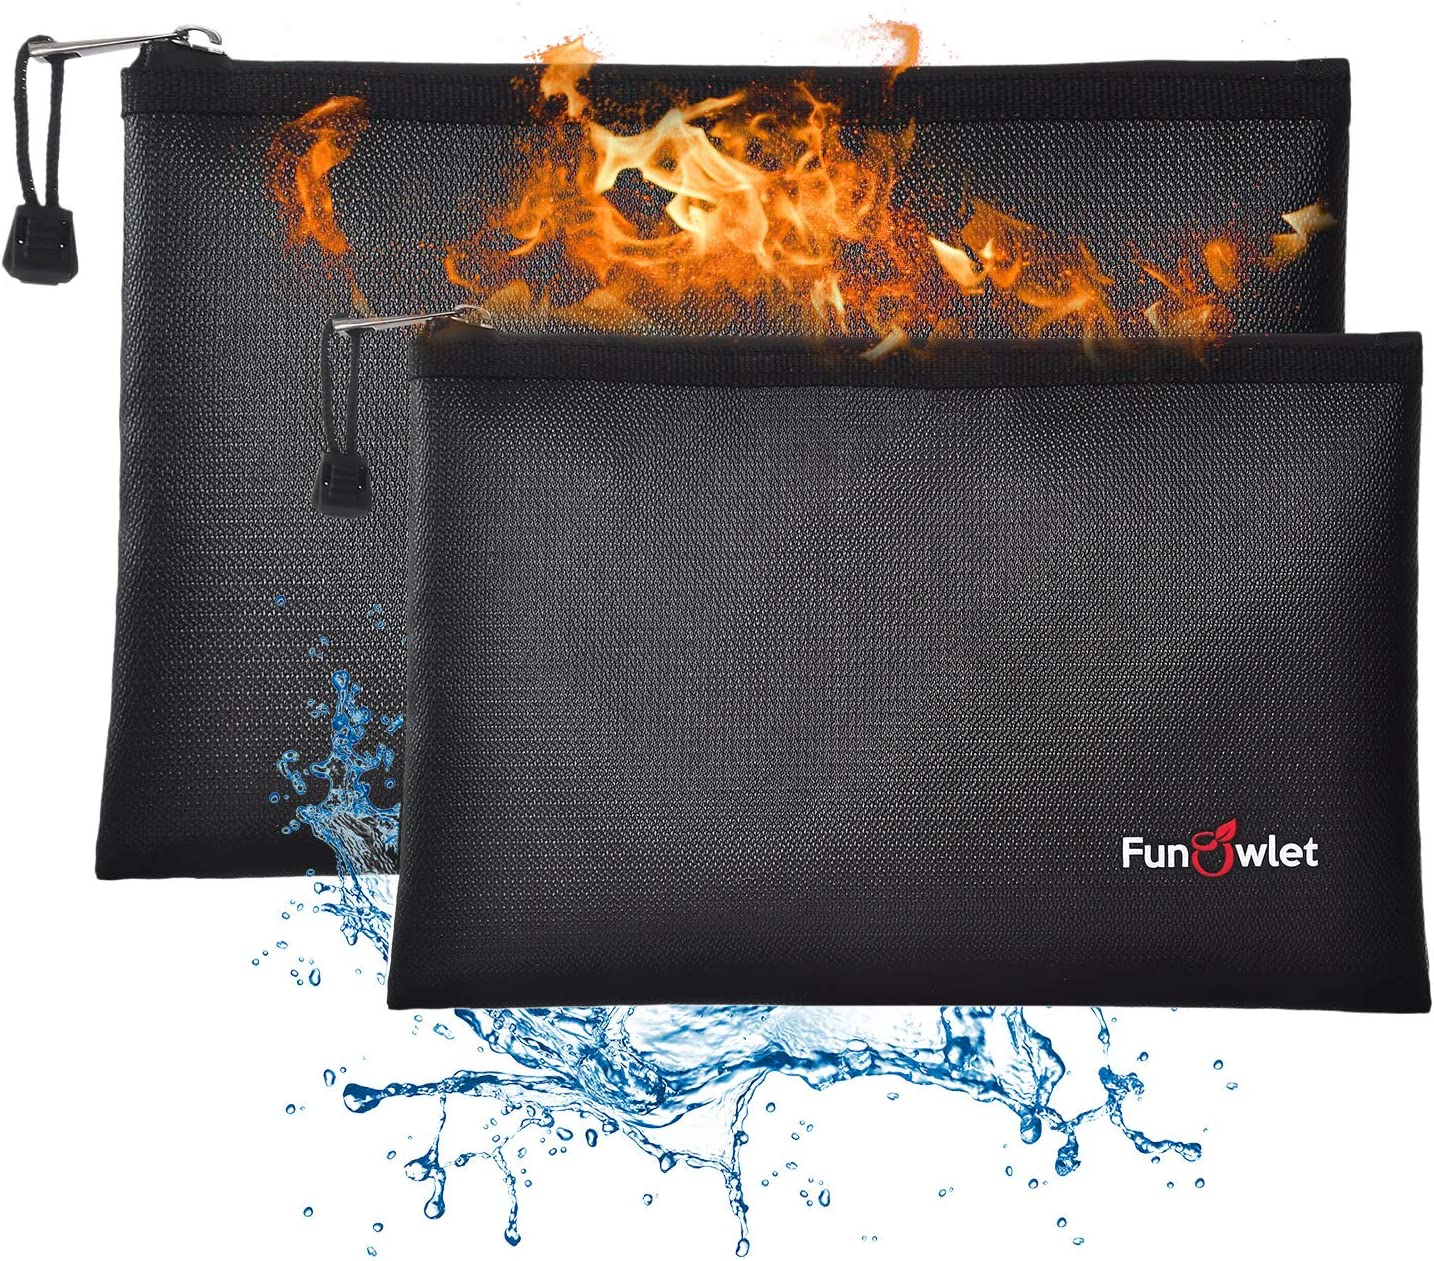 """Fireproof Safe Money Document Bags - 2 Pack 13.4"""" x 9.8"""" and 10.6"""" x 6.7"""" Waterproof Zipper Bag, Fire & Water Resistant Storage Organizer Pouch for A4 A5 Documents Holder,File,Cash,Passport,Tablet"""